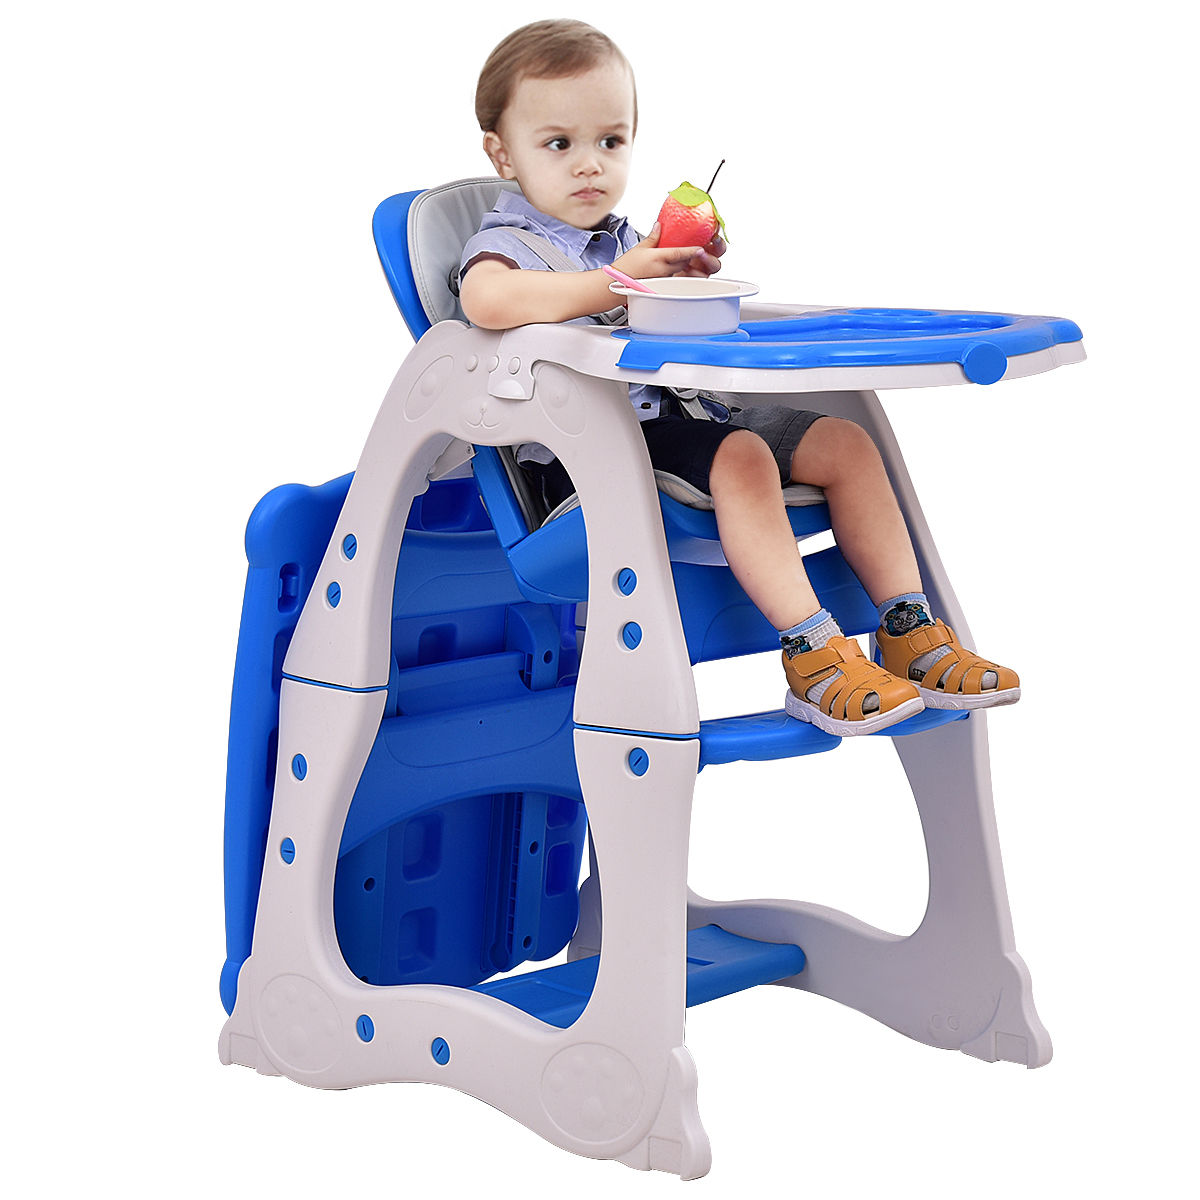 Goplus 3 in 1 Baby High Chair Convertible Play Table Seat Booster Toddler Feeding Tray Blue